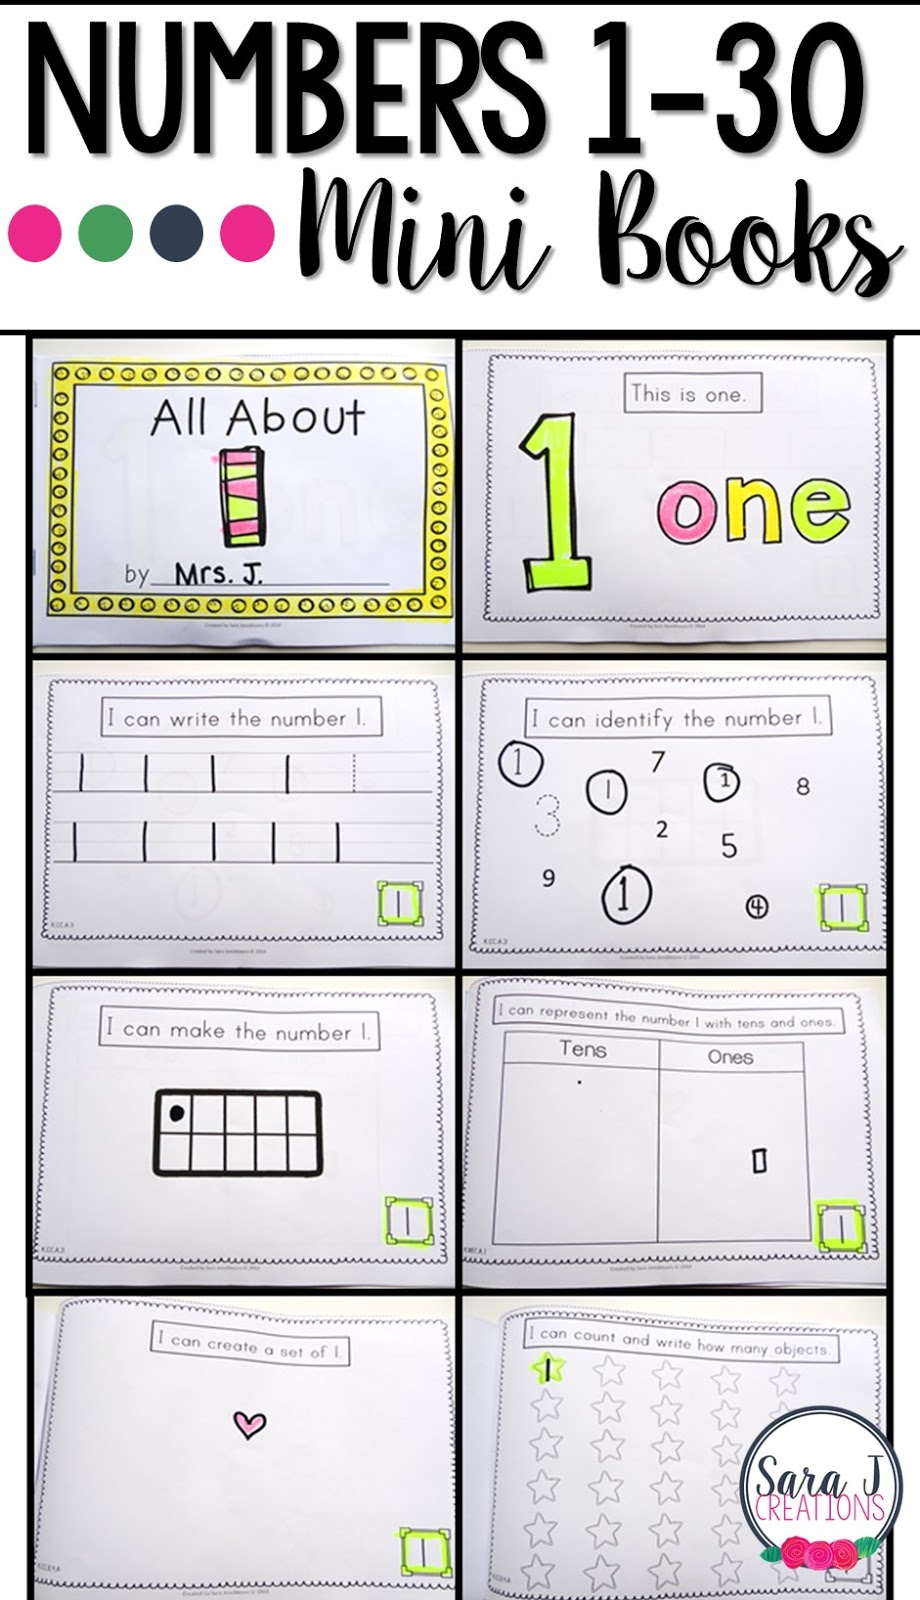 Number books are a great way to practice writing, identifying, counting, drawing, using tens frames and tens and ones to represent numbers 1-30.